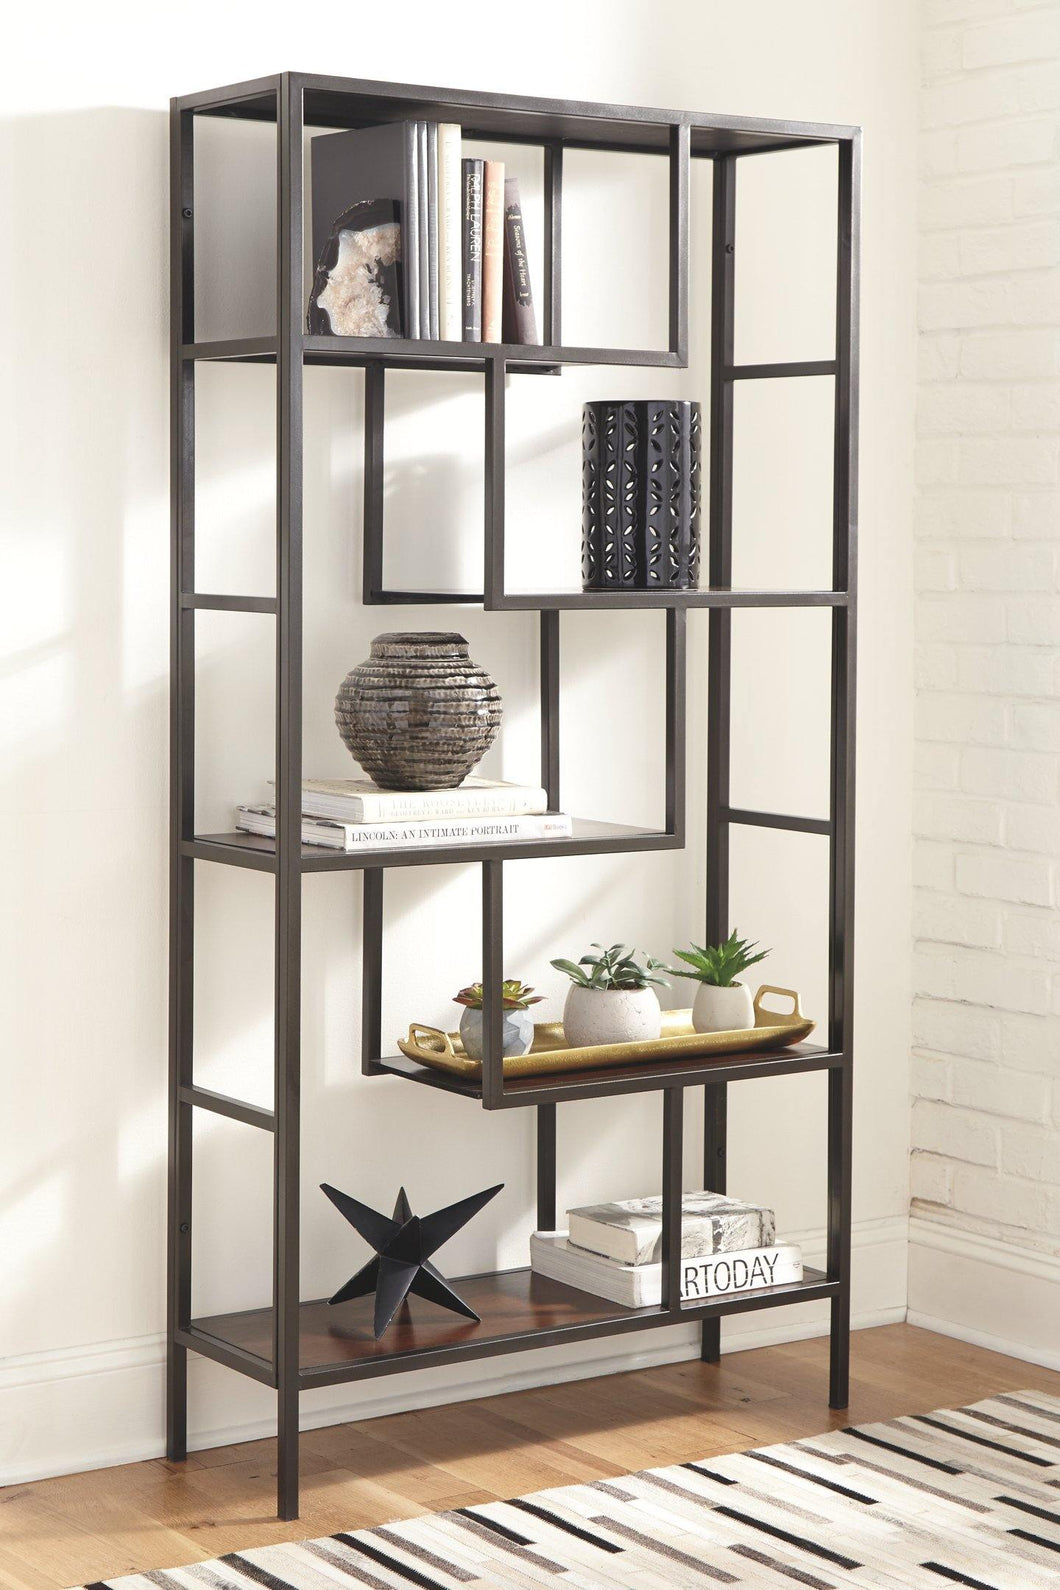 Frankwell Bookcase A4000021 By Ashley Furniture from sofafair